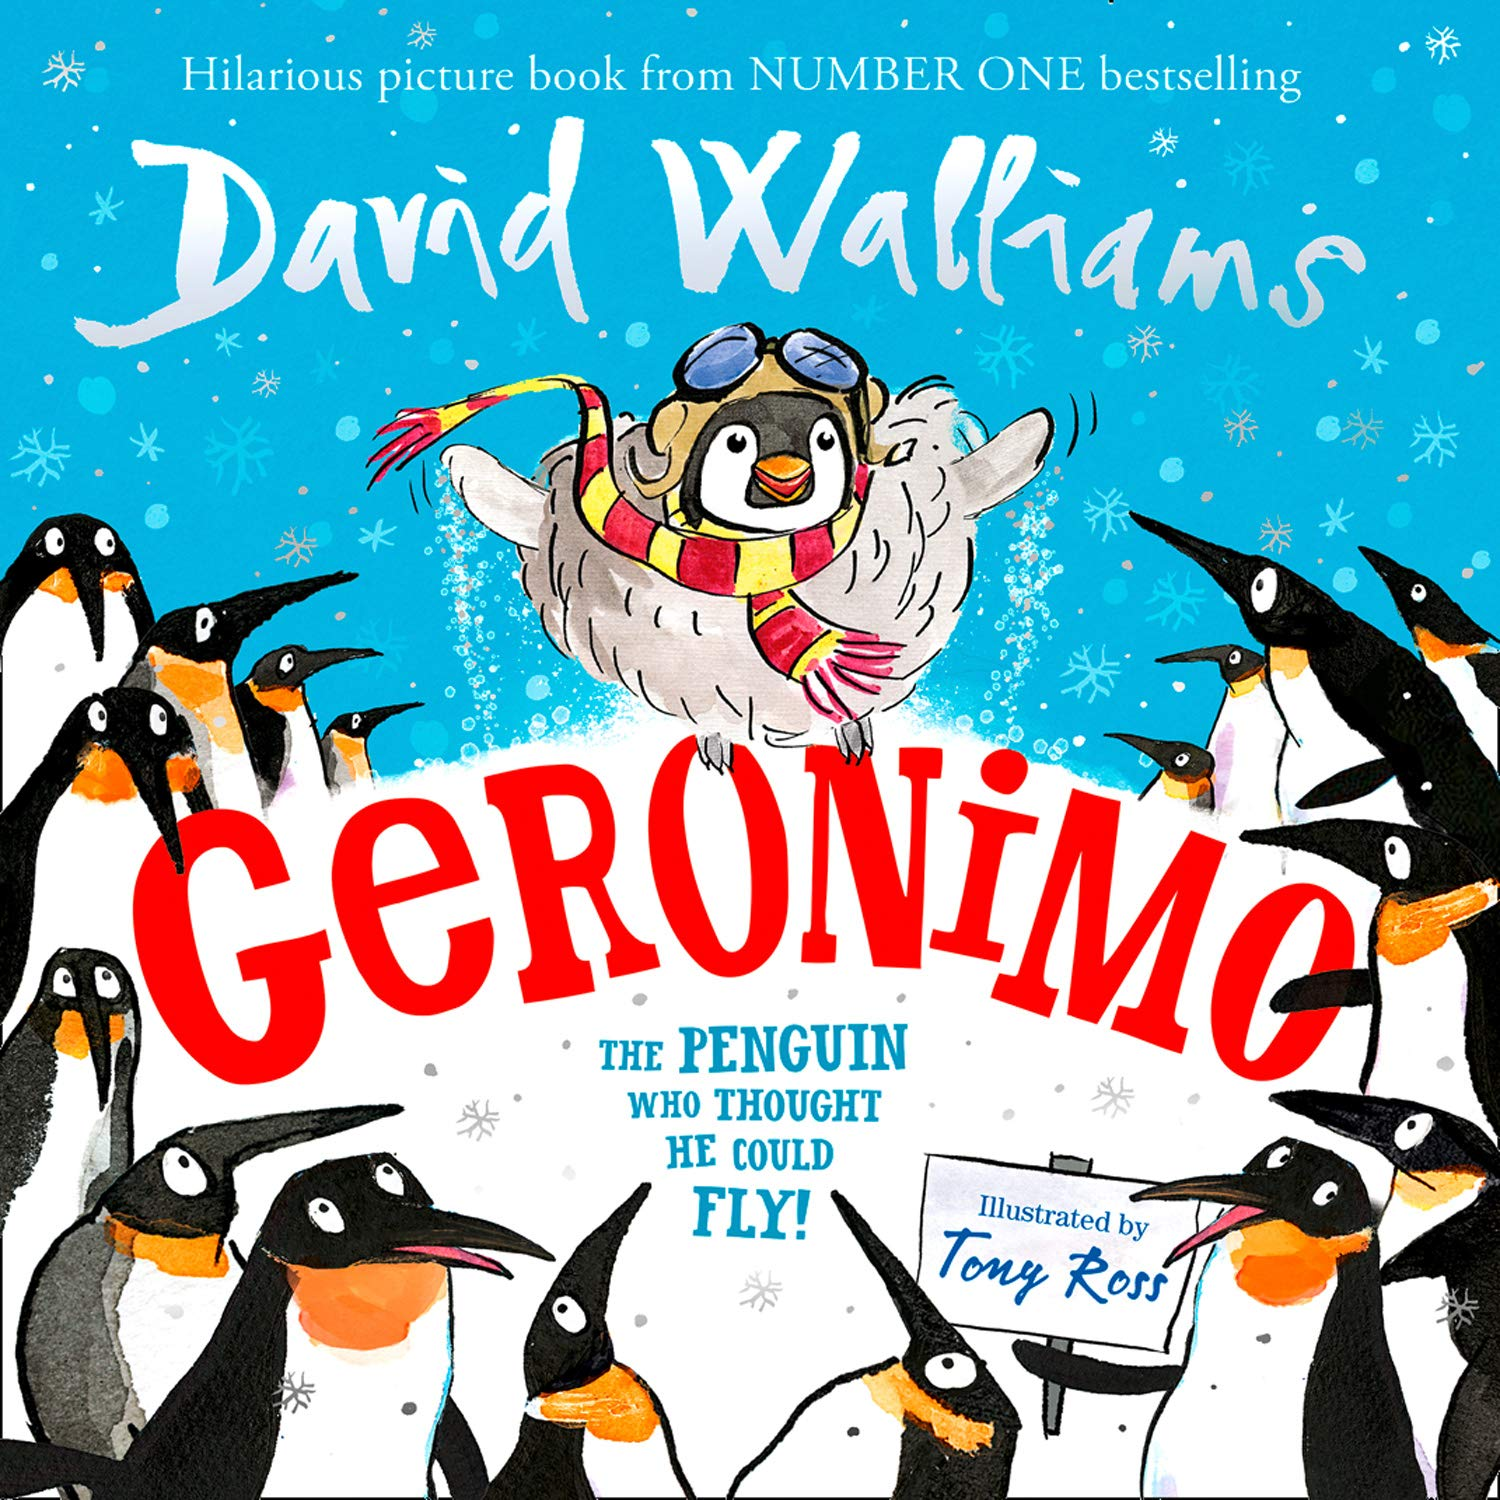 Geronimo: The Penguin who thought he could fly!: Amazon.co.uk ...